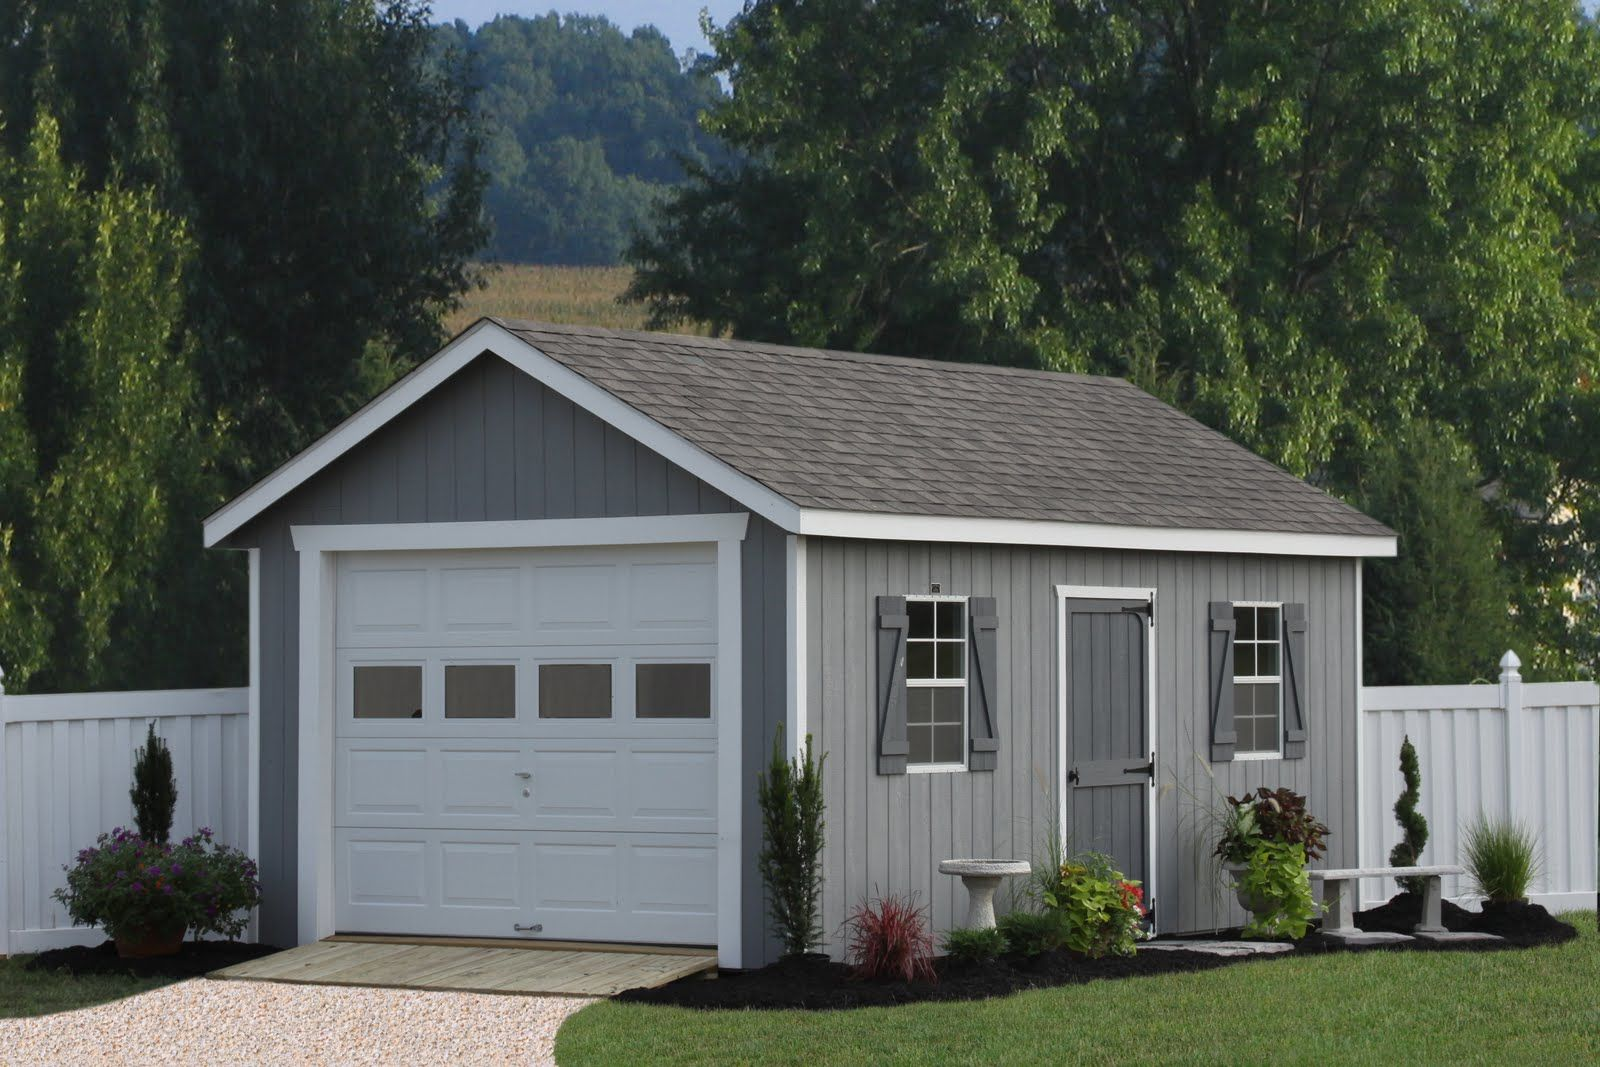 Prefab Garages In Beautiful Architecture Design: Small Grey Color Of Wall  Painting Prefab Garages Design Finished With Green View And Green .